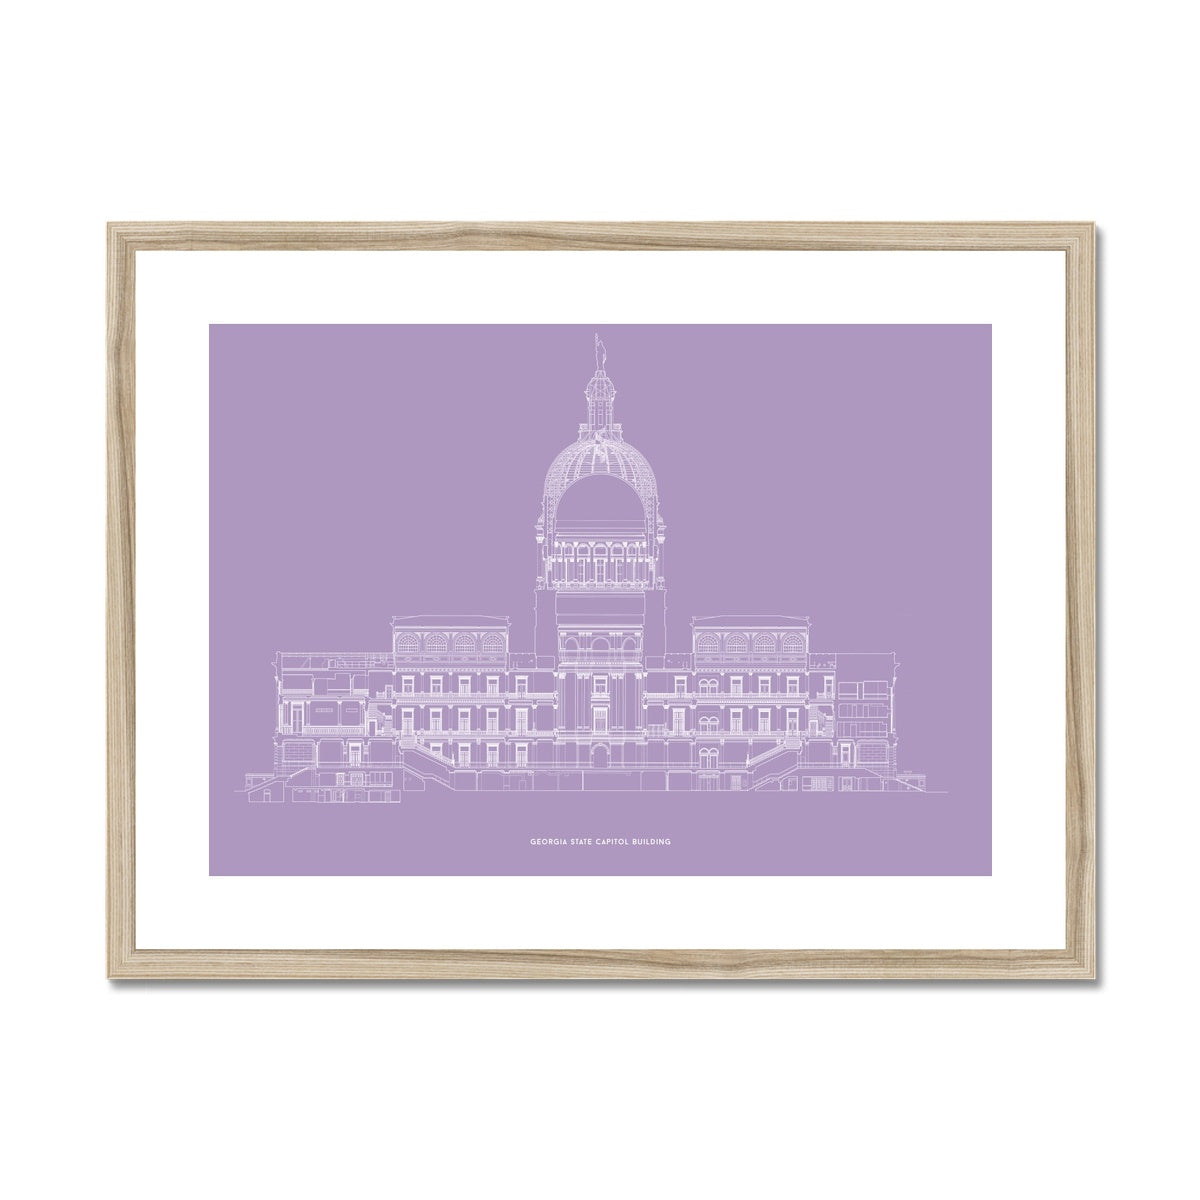 The Georgia State Capitol Building - West Elevation Cross Section - Lavender - Framed Mounted Print